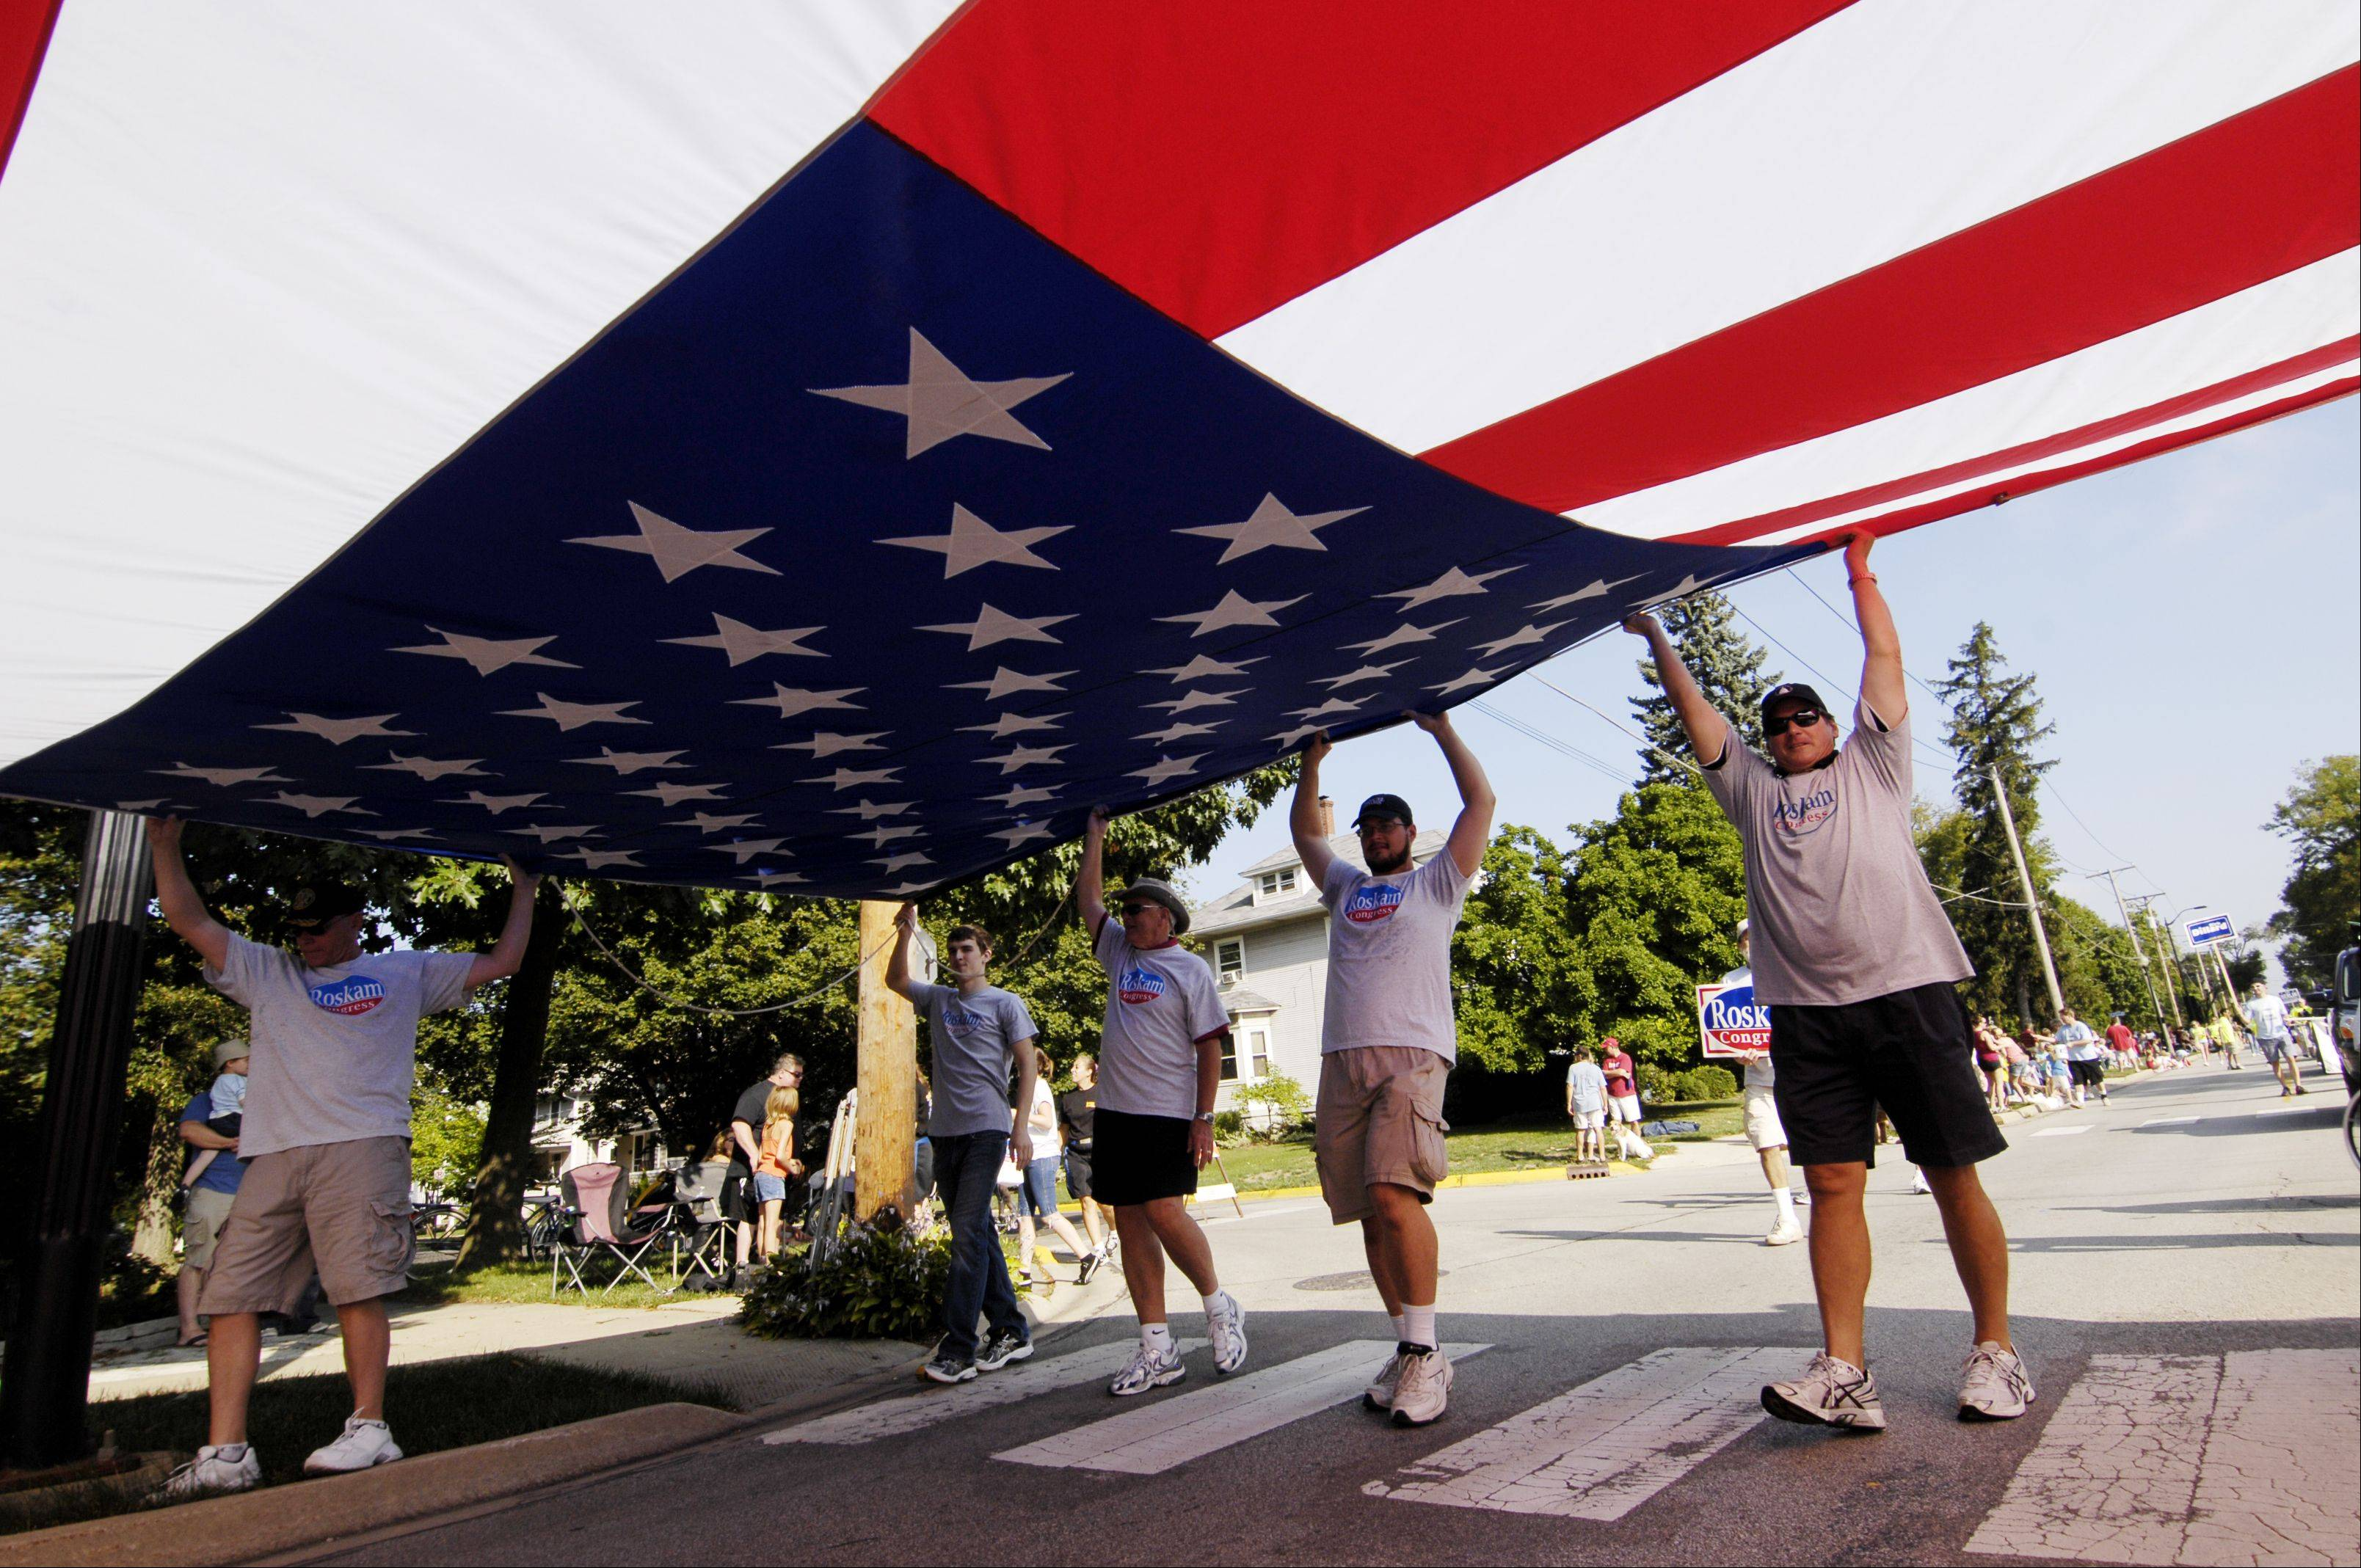 Supporters of Congressman Peter Roskam carry a large American Flag as they march in the rescheduled Wheaton Fourth of July parade on Labor Day. The parade was rescheduled because of storm damage from July 1.